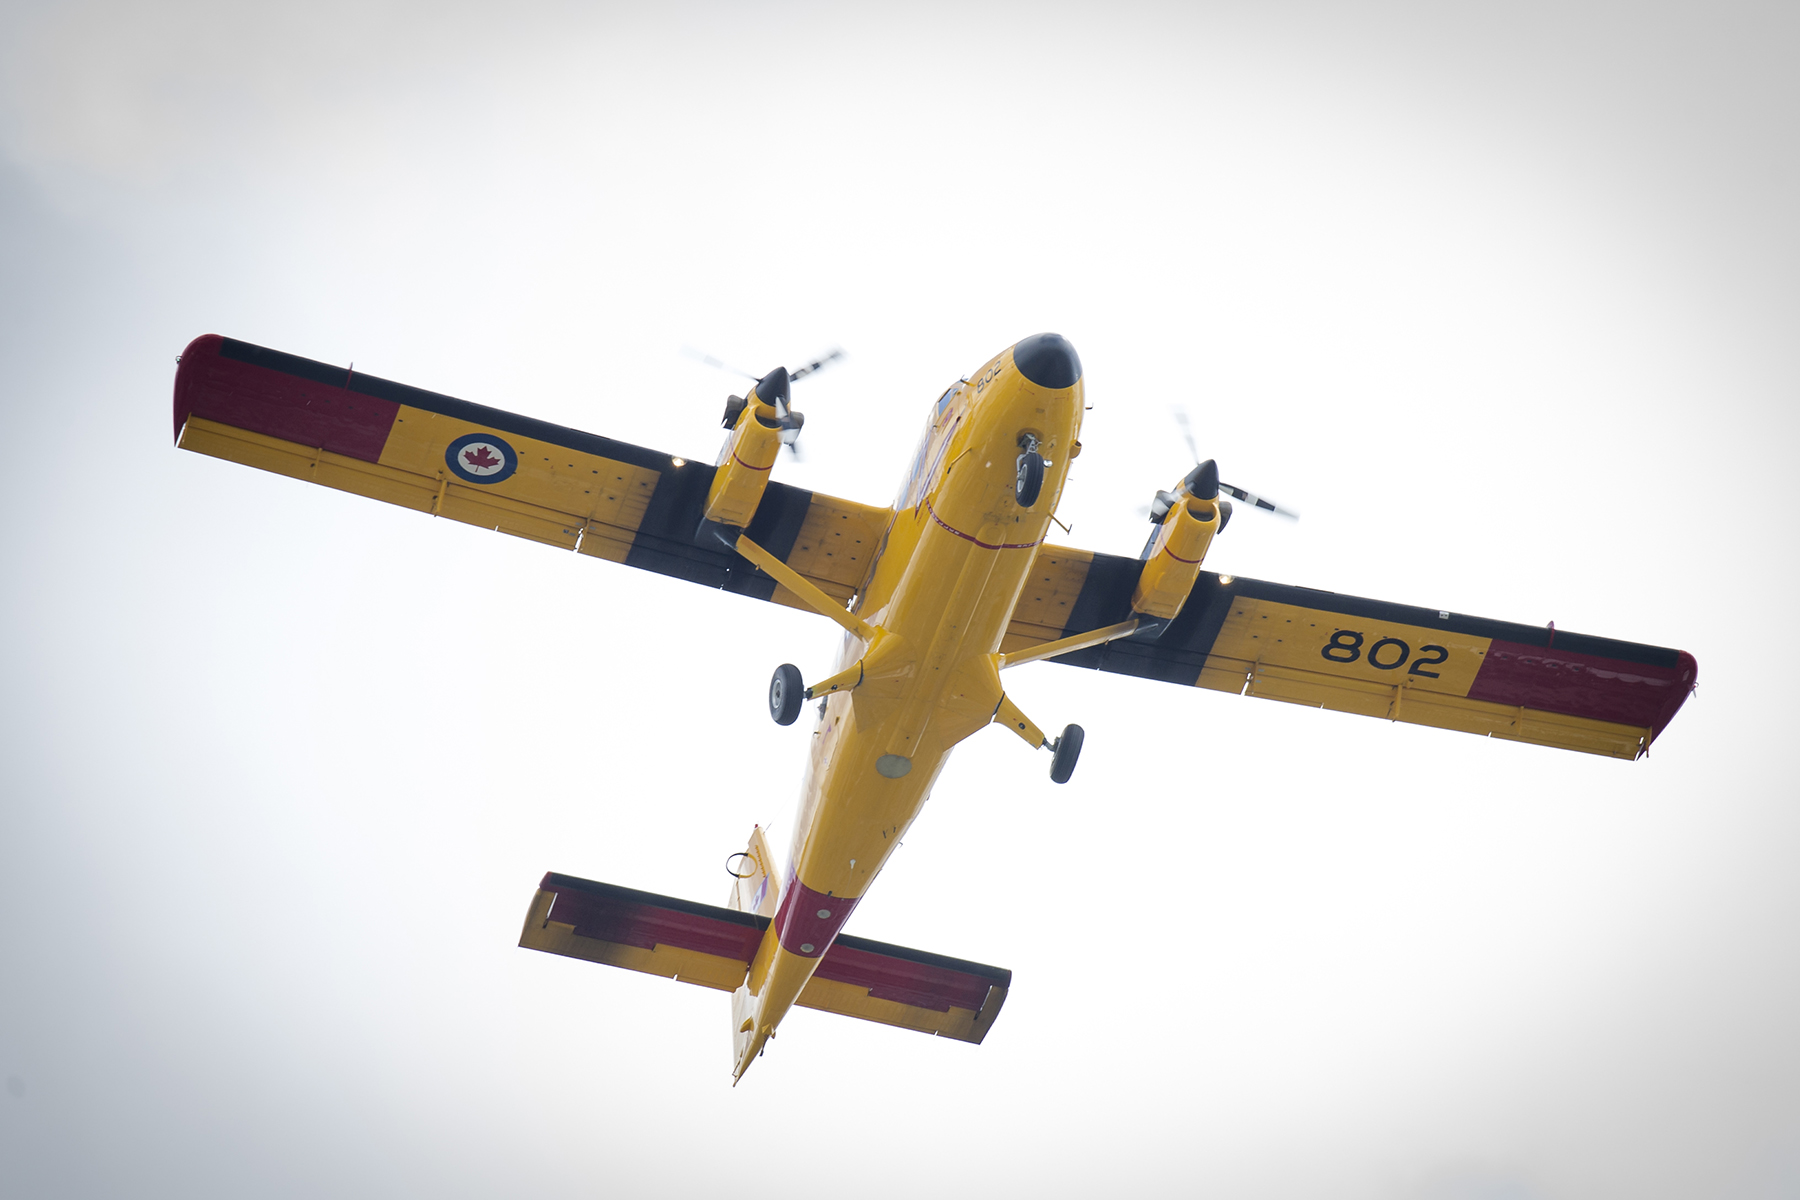 On July 2, 2017, a CC-138 Twin Otter, a short takeoff and landing aircraft, flies over Parliament Hill in Ottawa, Ontario, to mark the 150th anniversary of Canada's confederation. The Twin Otter can be outfitted with wheels or skis to land on water, land, snow or ice, and is used in transport and support roles, and in search and rescue missions in Canada's north. The Canadian Armed Force's four Twin Otters are based in Yellowknife, Northwest Territories. PHOTO: Corporal Michael J. MacIsaac, SU12-2017-0794-141